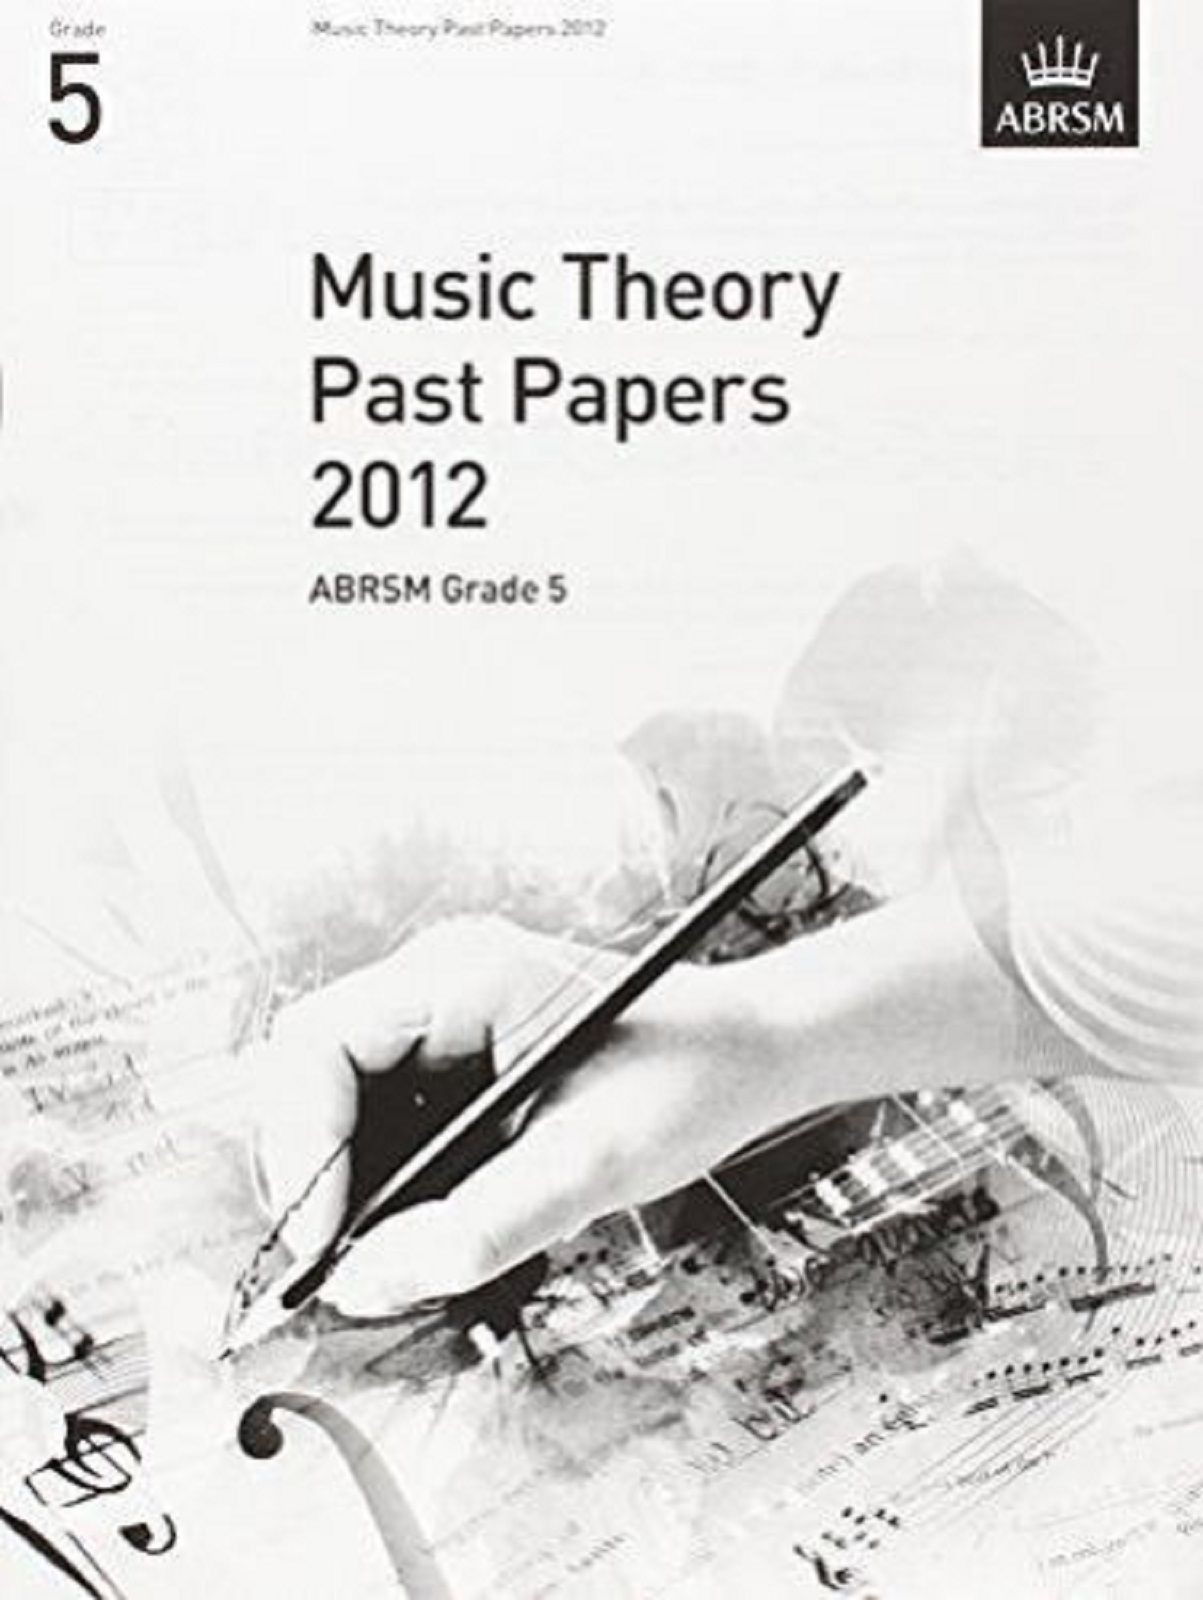 Music Theory Past Papers 2012 ABRSM Grade 5 Exam Practice Book S117